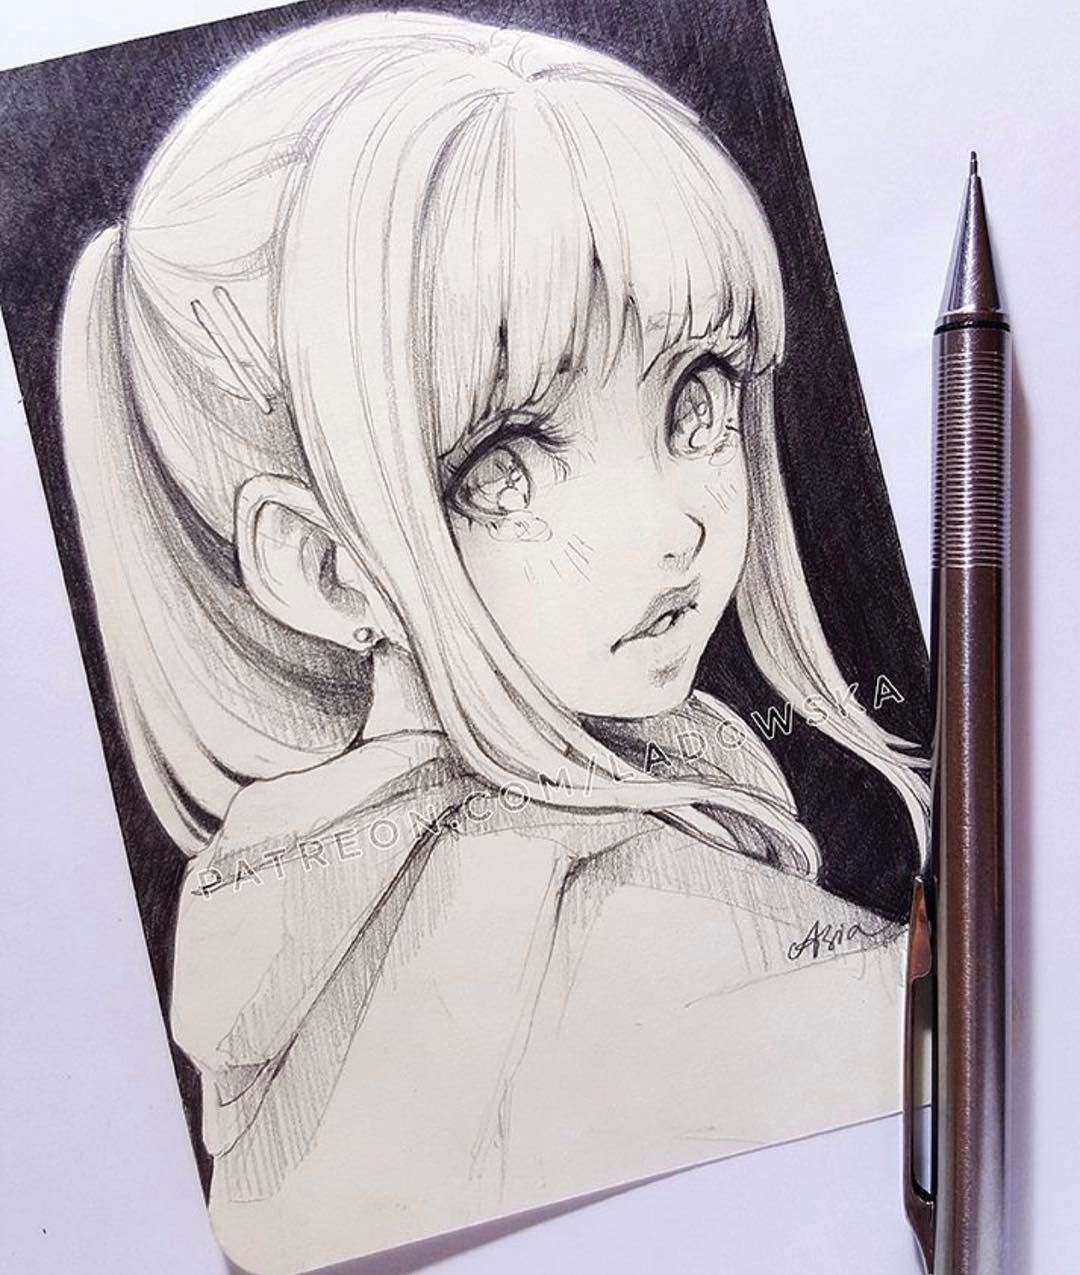 This Illustrator Sketches People As Anime Character And The Result Is Impressive Anime Manga Cartoon Drawings Of People Girl Drawing Sketches Artist Sketches